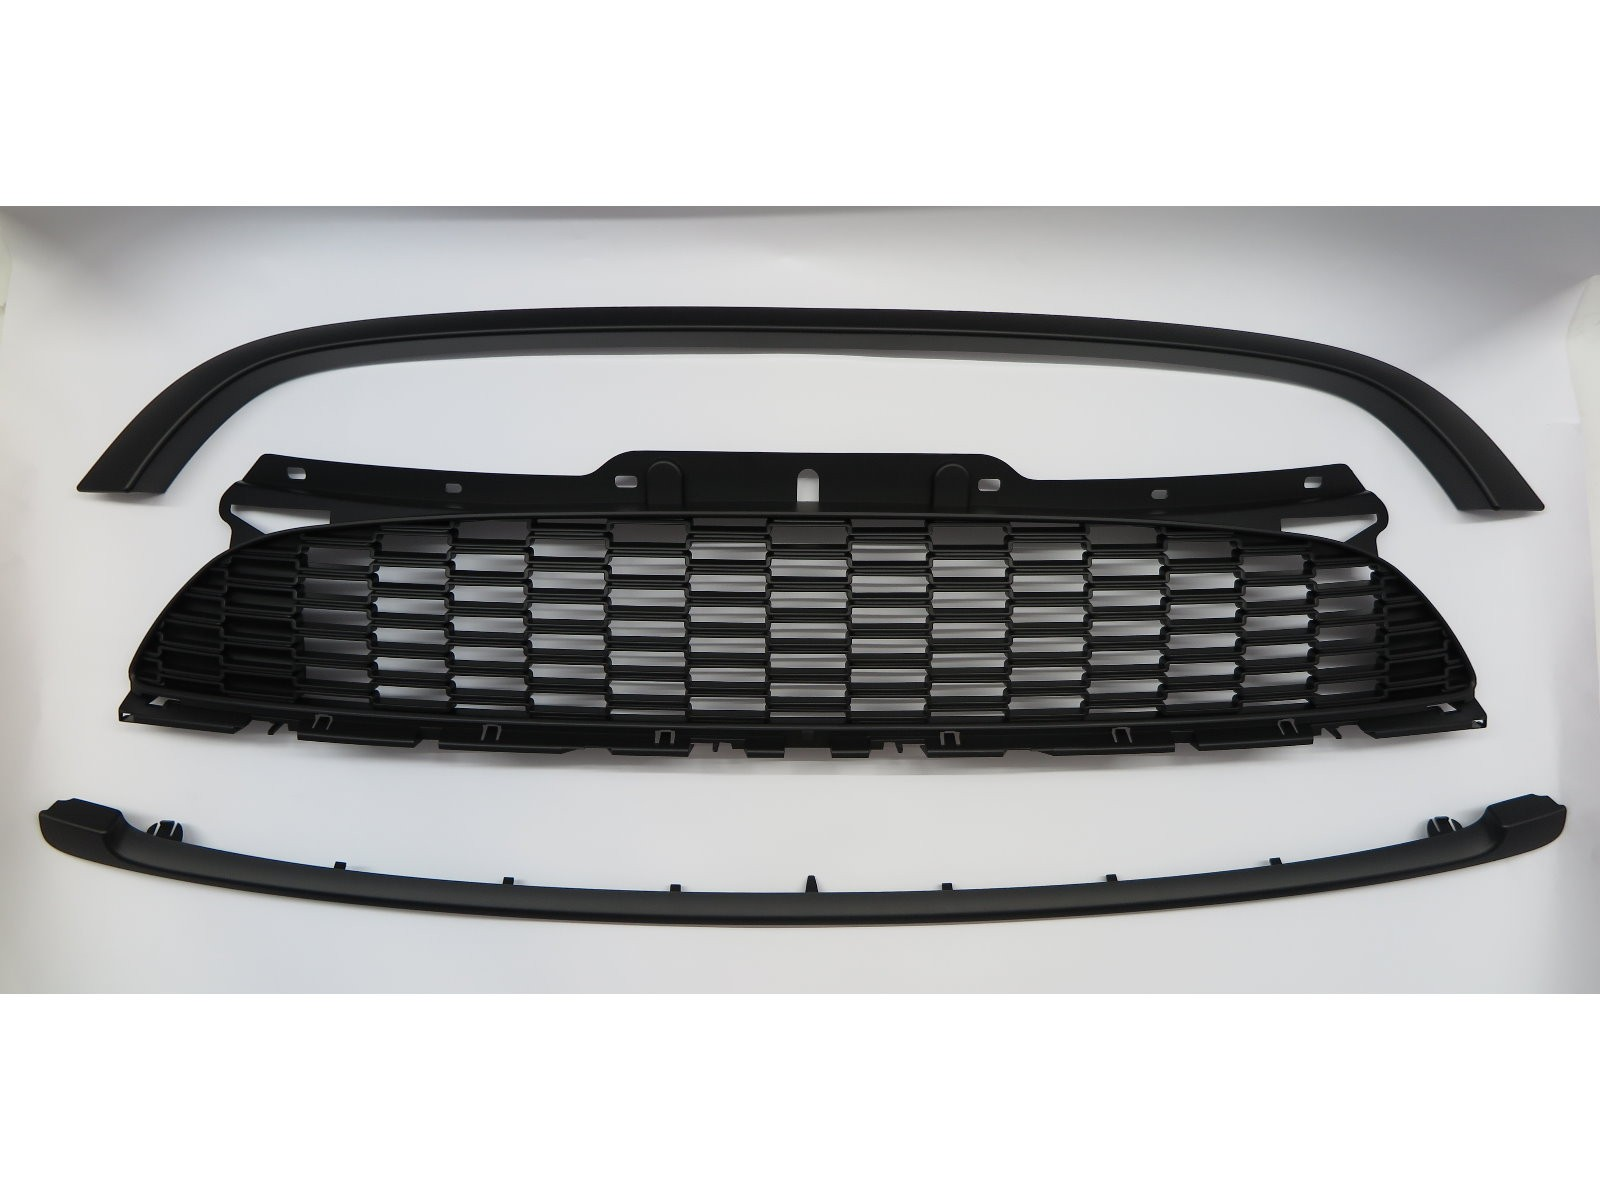 CrazyTheGod MINI COOPER S R55 R56 R57 R58 Second generation 2007-2013 Hatchback/Coupe/Convertible 2D/4D JCW Style GRILLE/GRILL Matt Black for MINI